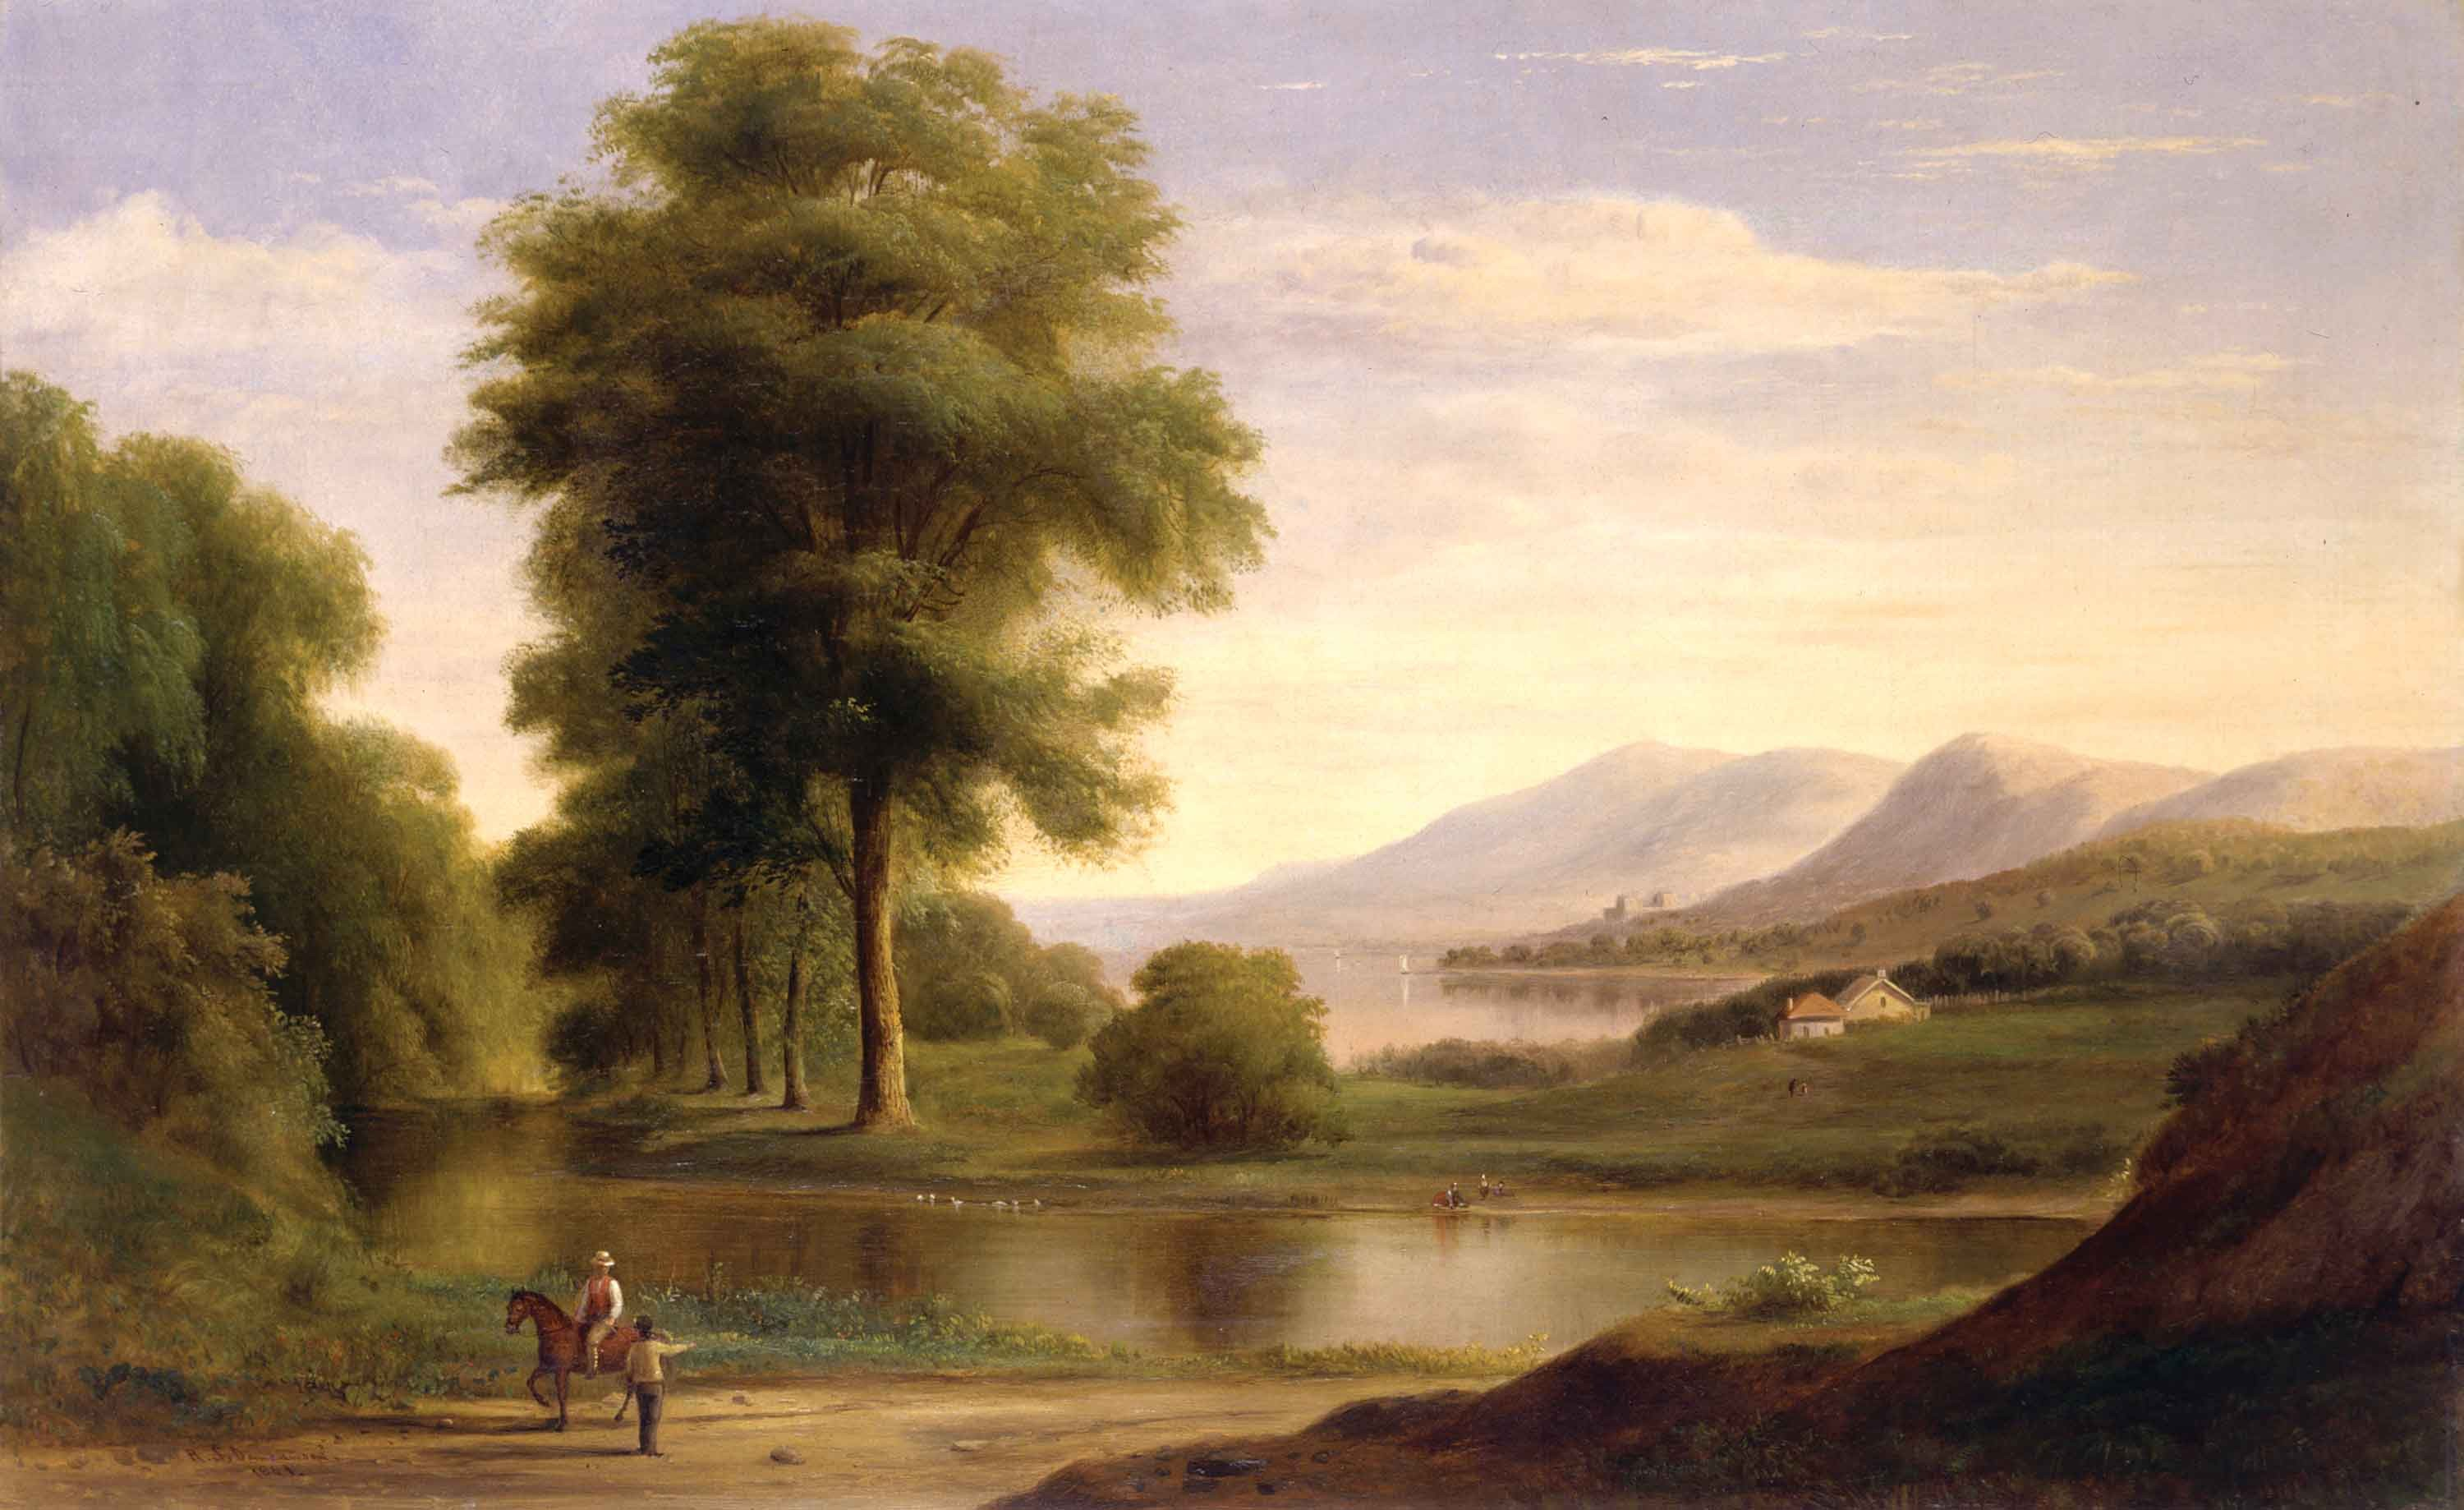 The Hudson River School Via Cincinnati Visual Art Hudson Valley